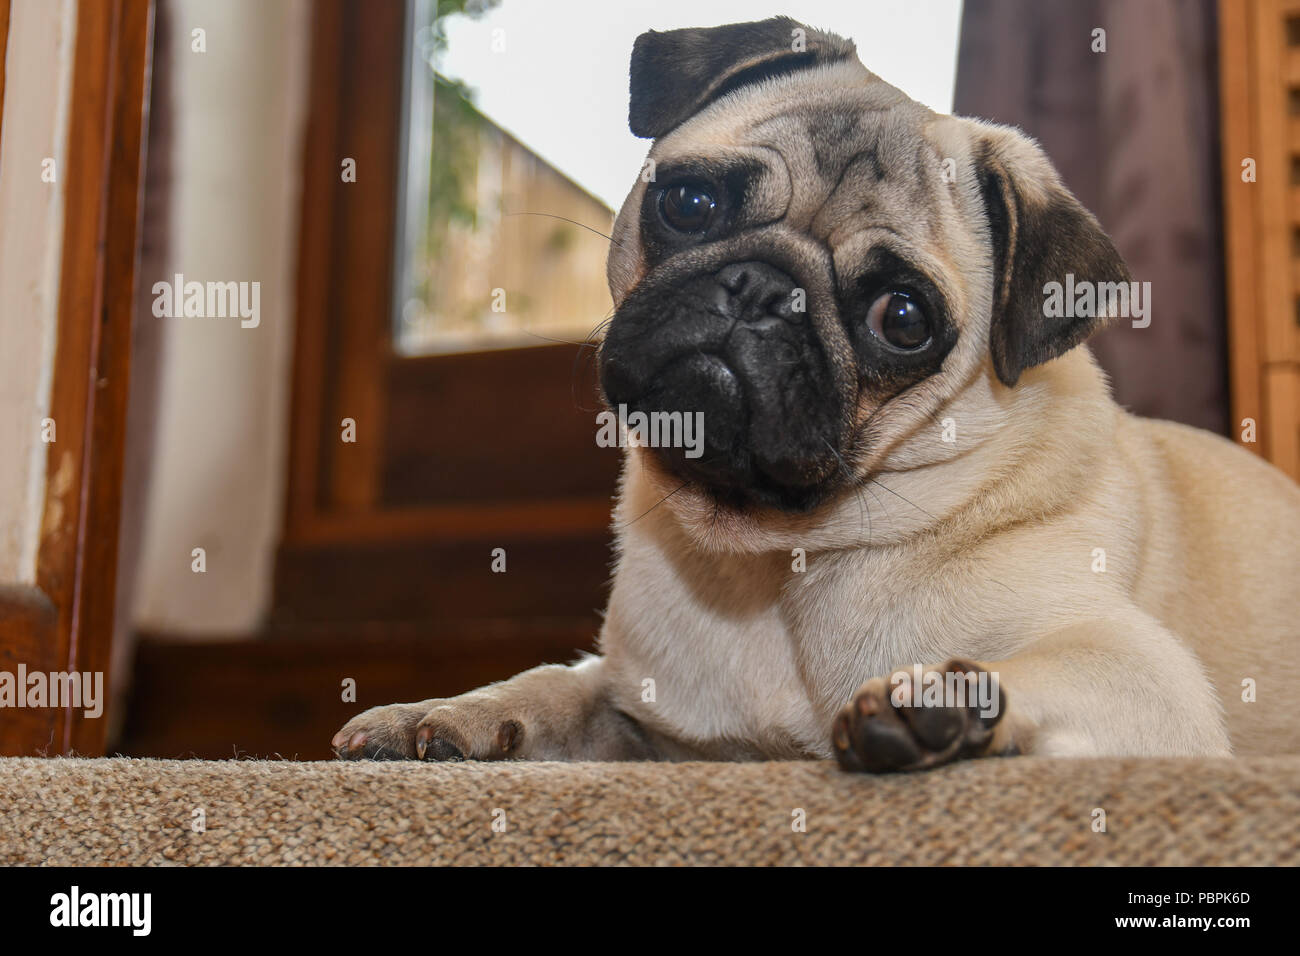 Pug with his head to one side looking inquisitively - Stock Image